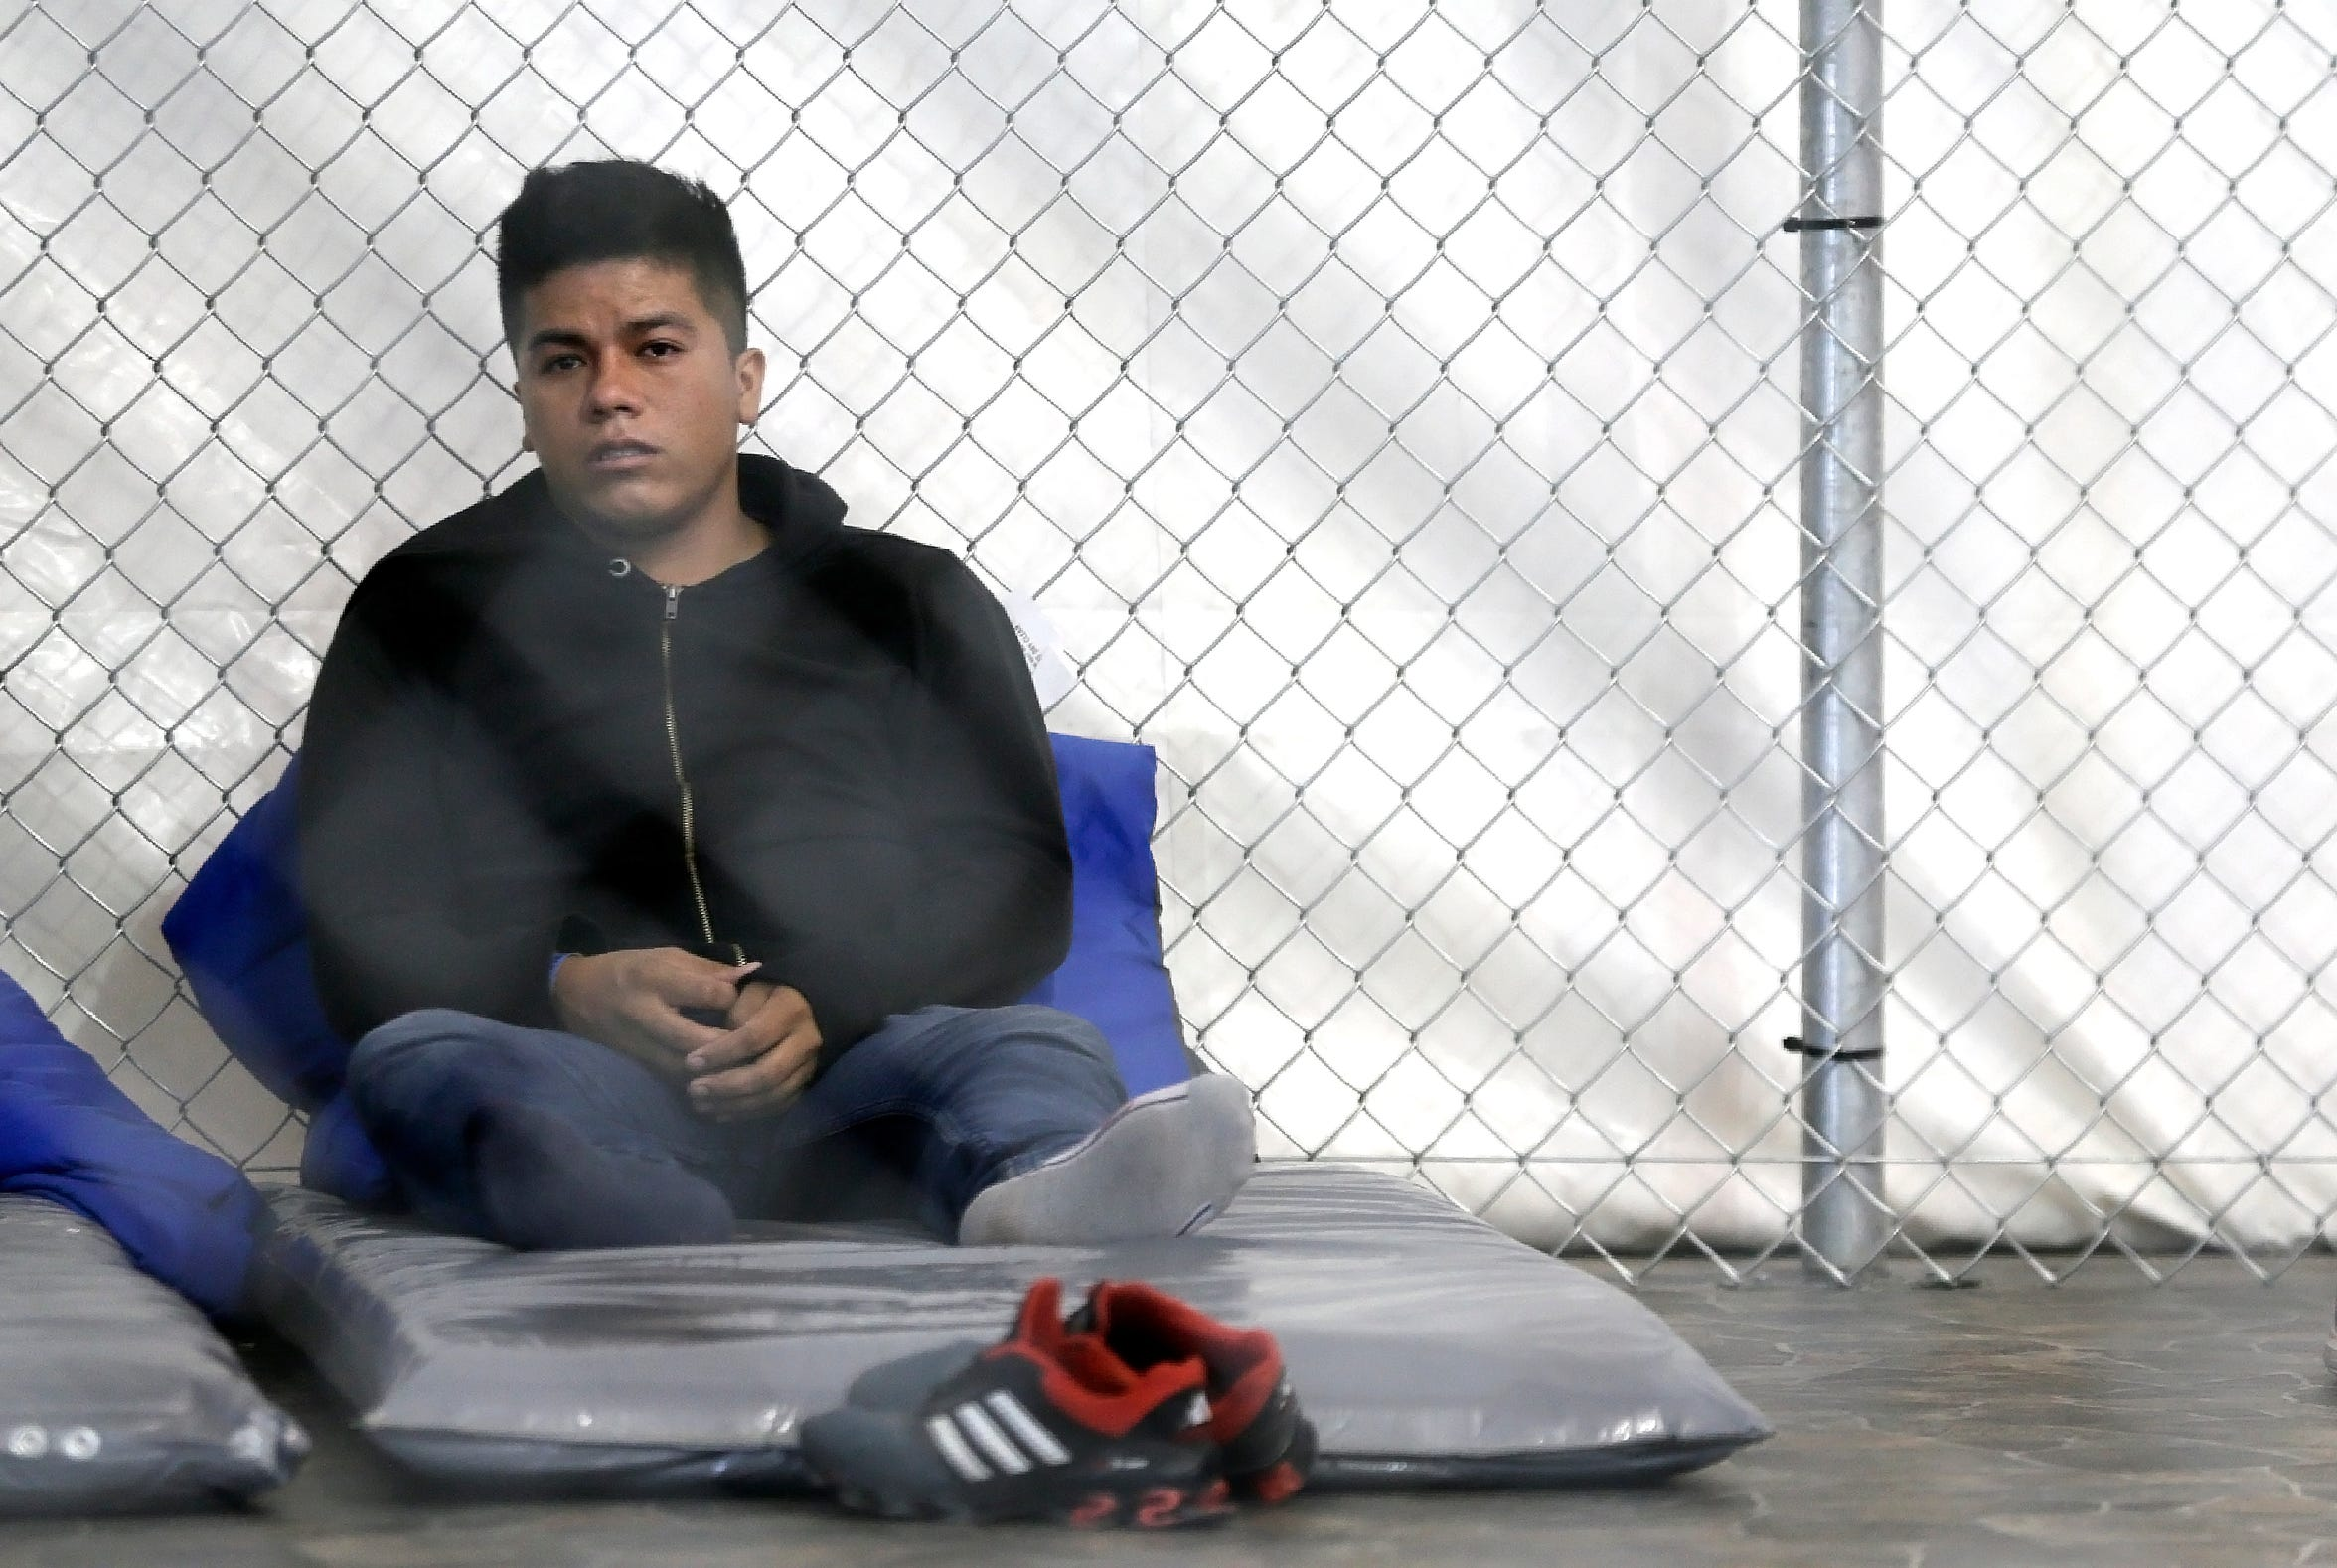 Guatemalan asylum seeker Rodormiro Ramos Herrera sits in a detention pod at the Tornillo Processing Center on August, 15, 2019. Herrera was arrested by Border Patrol on his third attempt to enter the United States. Like many asylum seekers, Ramos Herrera grew tired of the long wait in Juarez under Migrant Protection Protocols and attempted entry illegally.